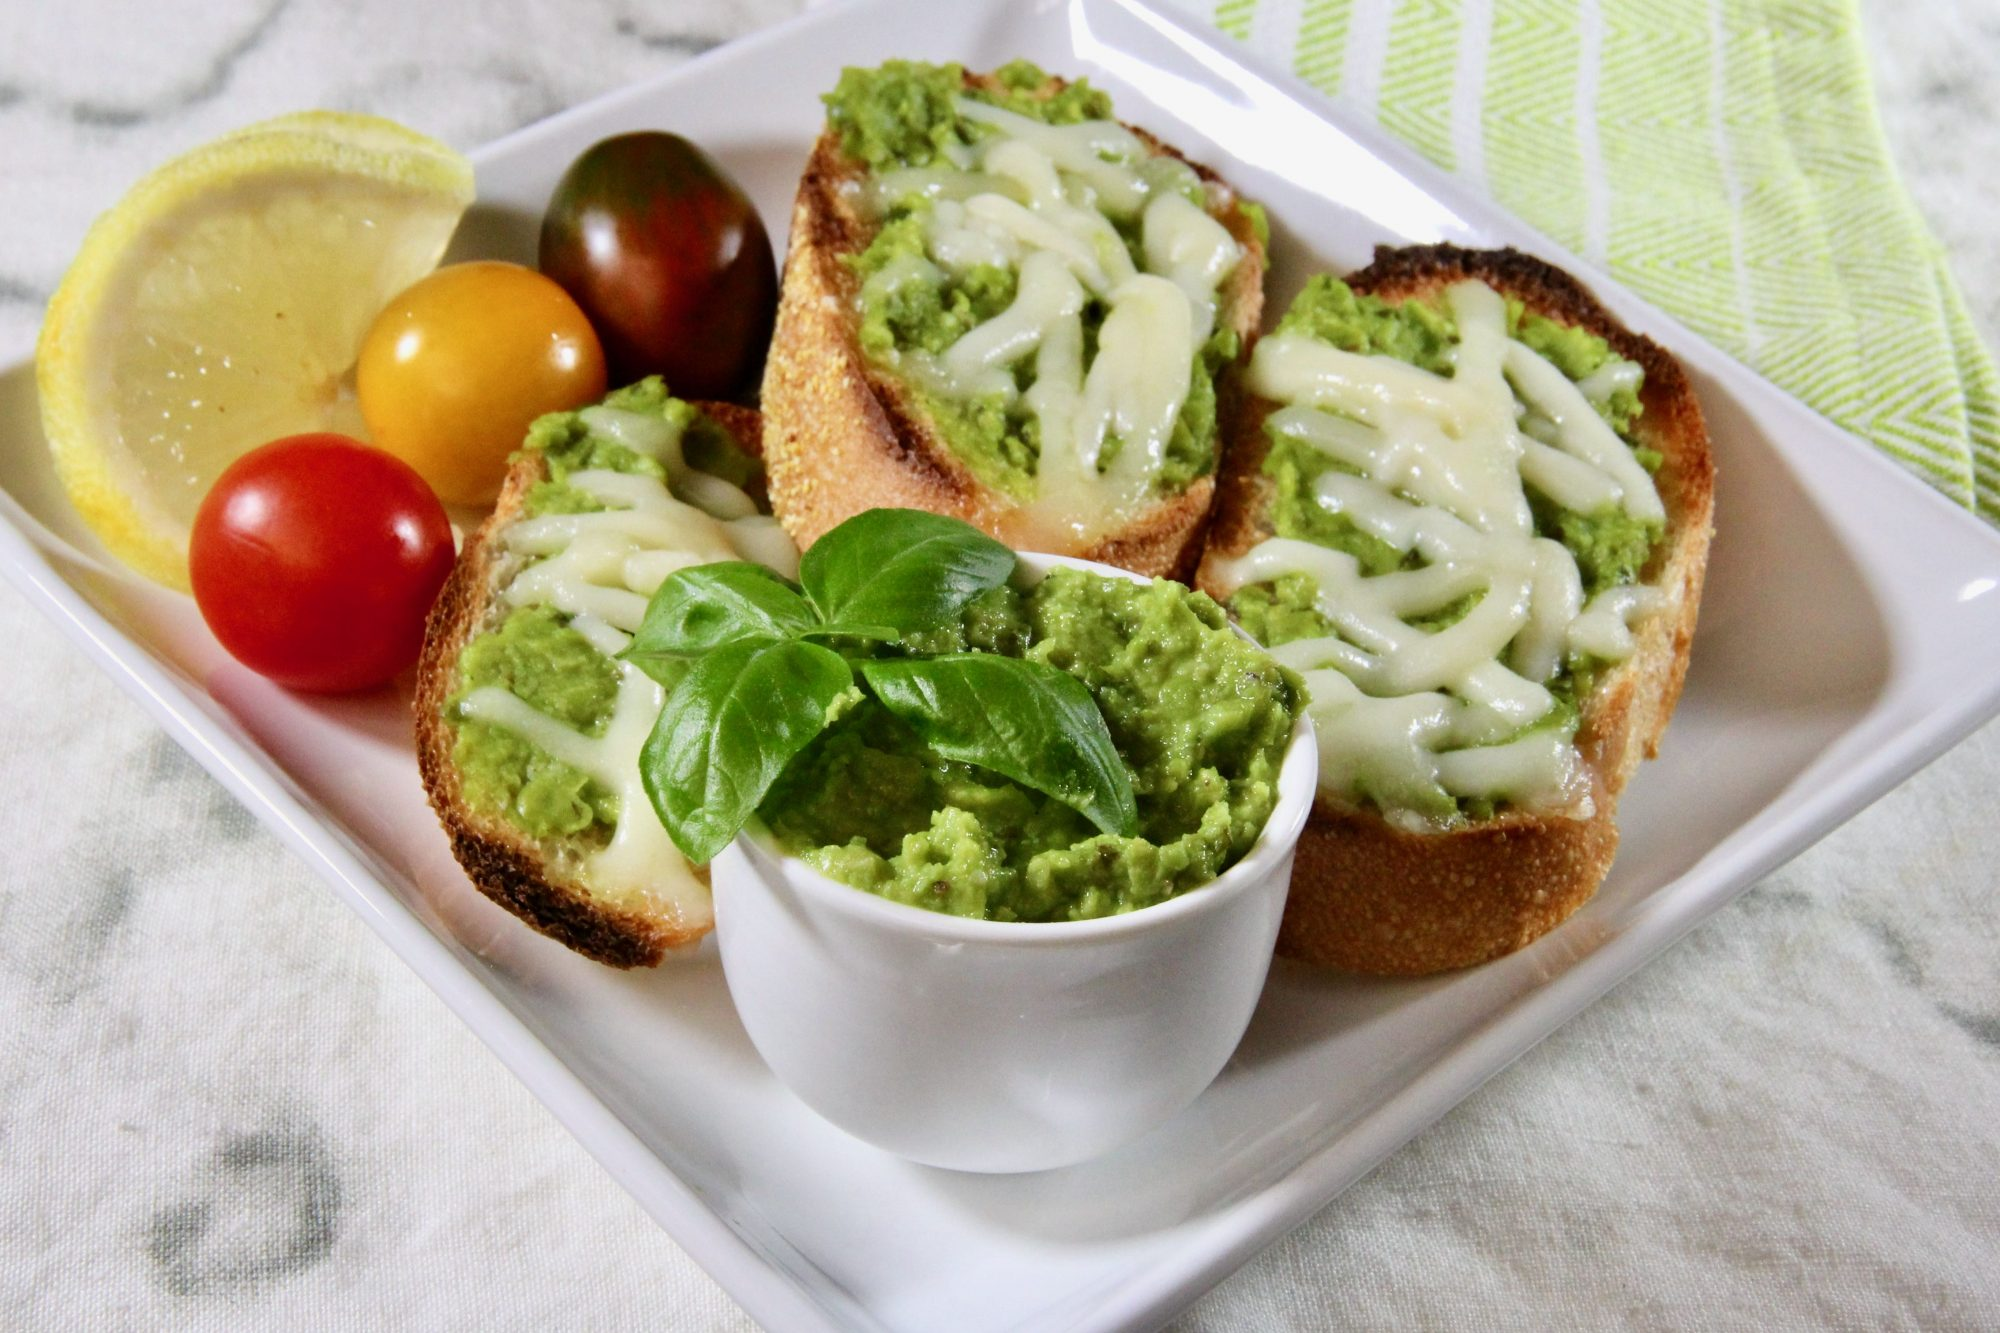 green pea pesto in a ramekin served with a tray of bread and tomatoes